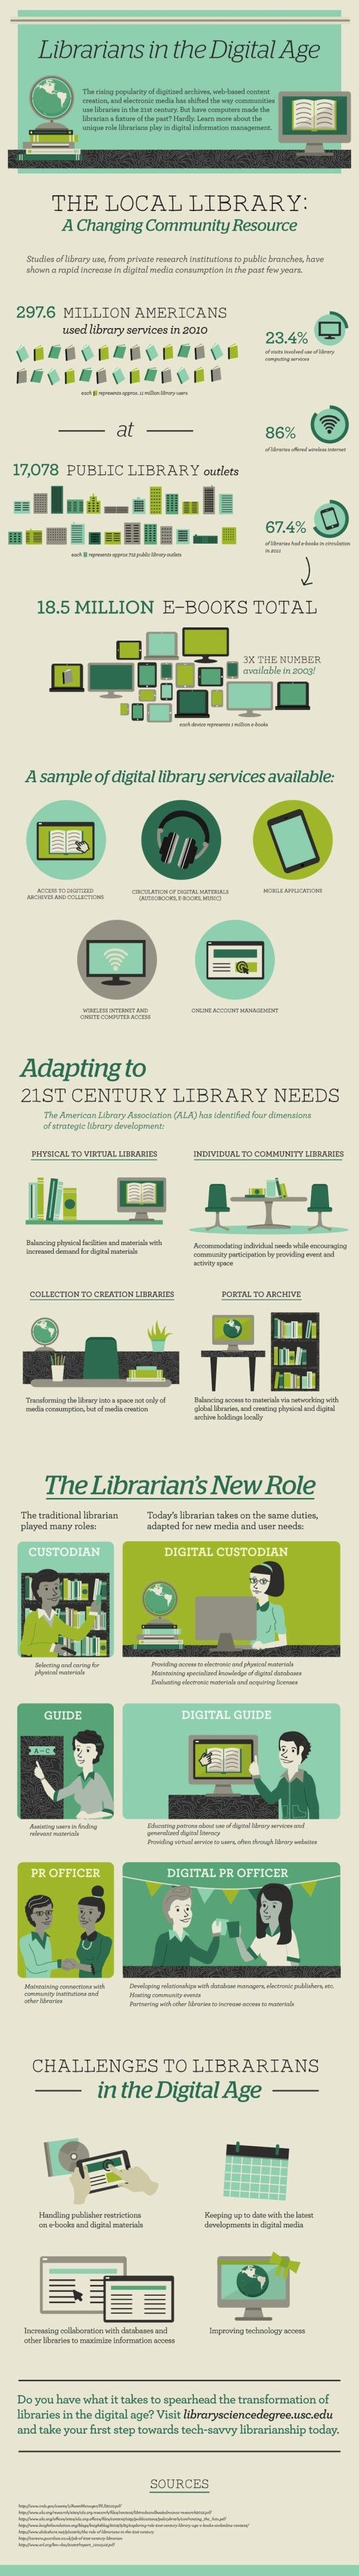 Librarians in the digital age / from Libraries matter: 10 fantastic #library #infographics